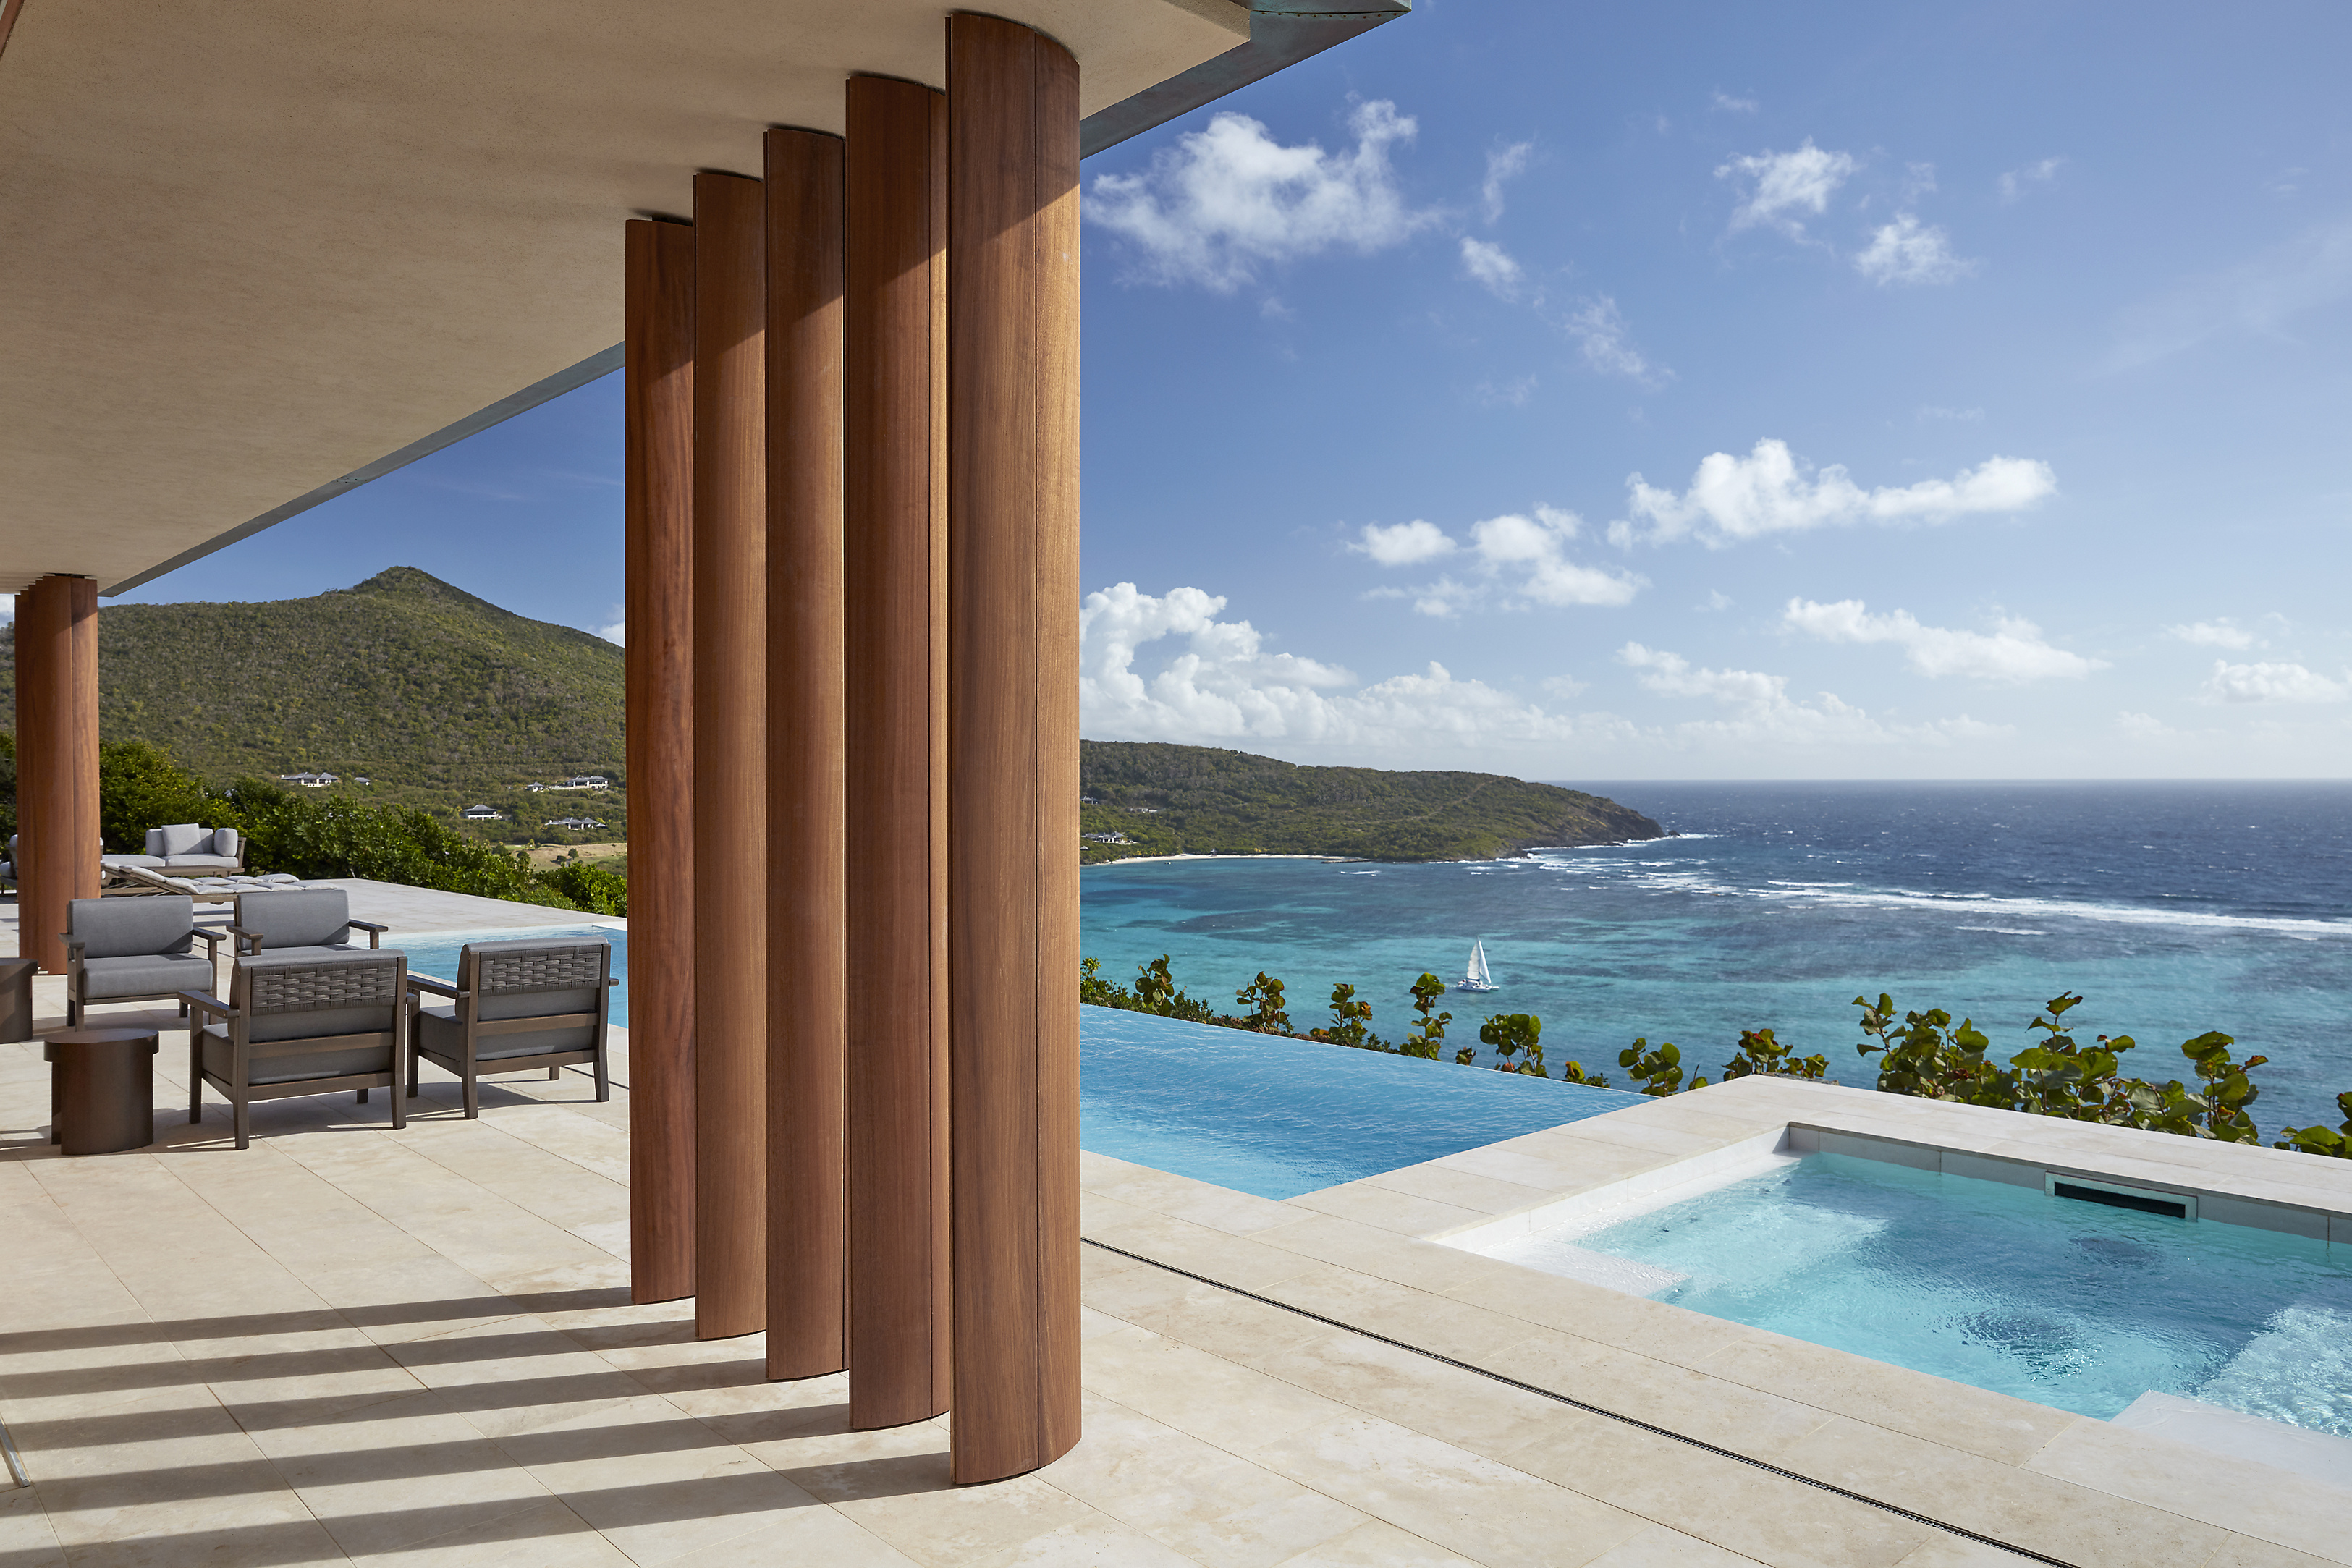 Mandarin-Oriental-canouan-accommodation-patio-villa-04